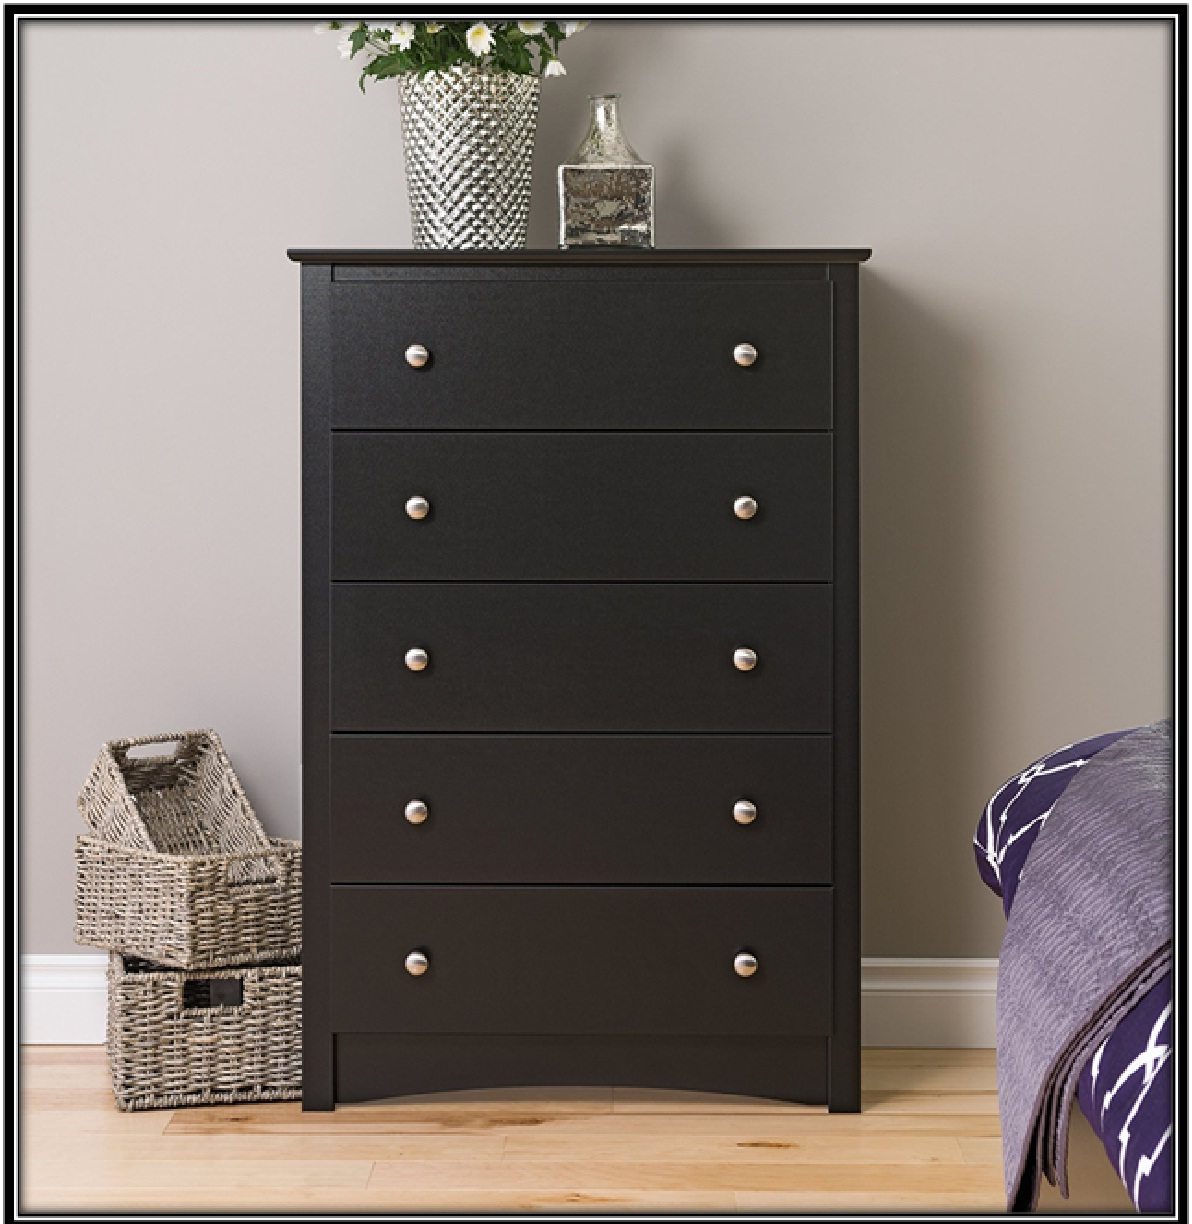 Drawer for holding accessories and saving space - home decor ideas